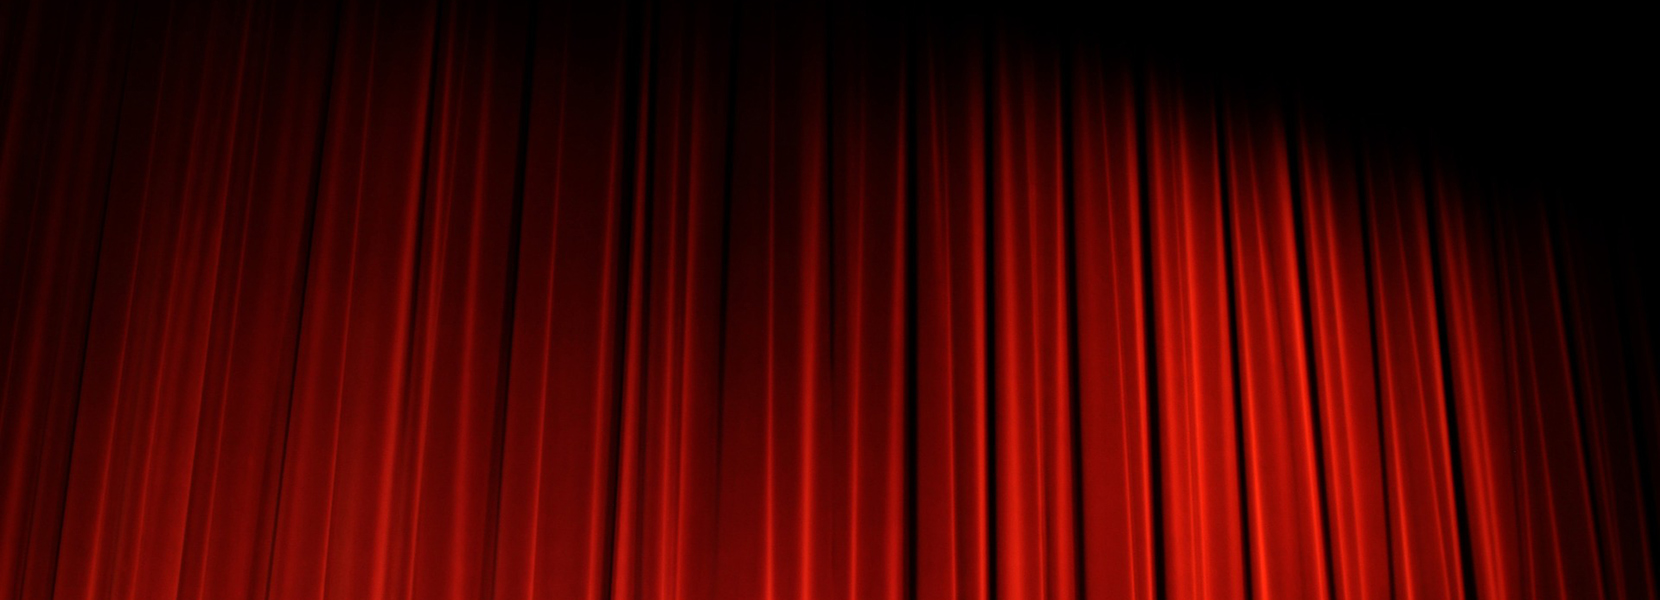 curtain-939464_1920-cropped